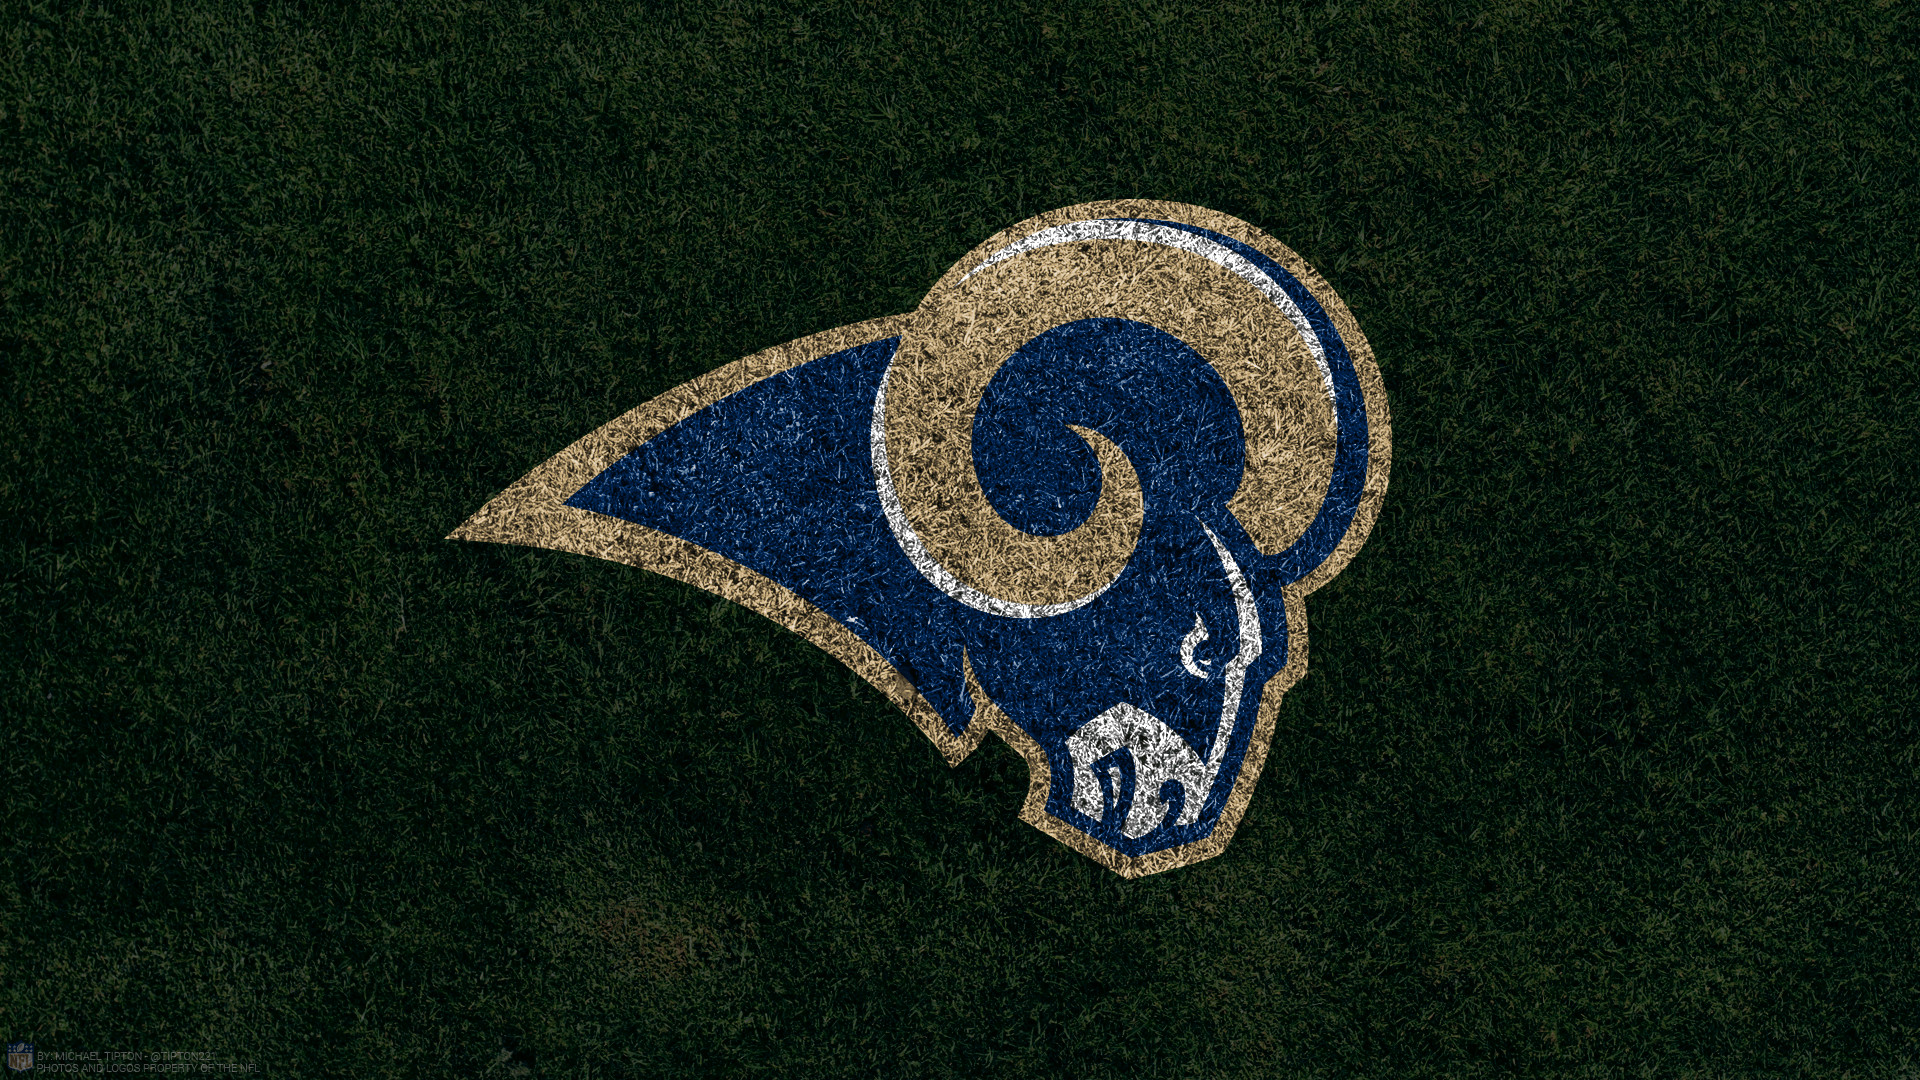 2017 Los Angeles Rams Wallpapers – PC |iPhone| Android